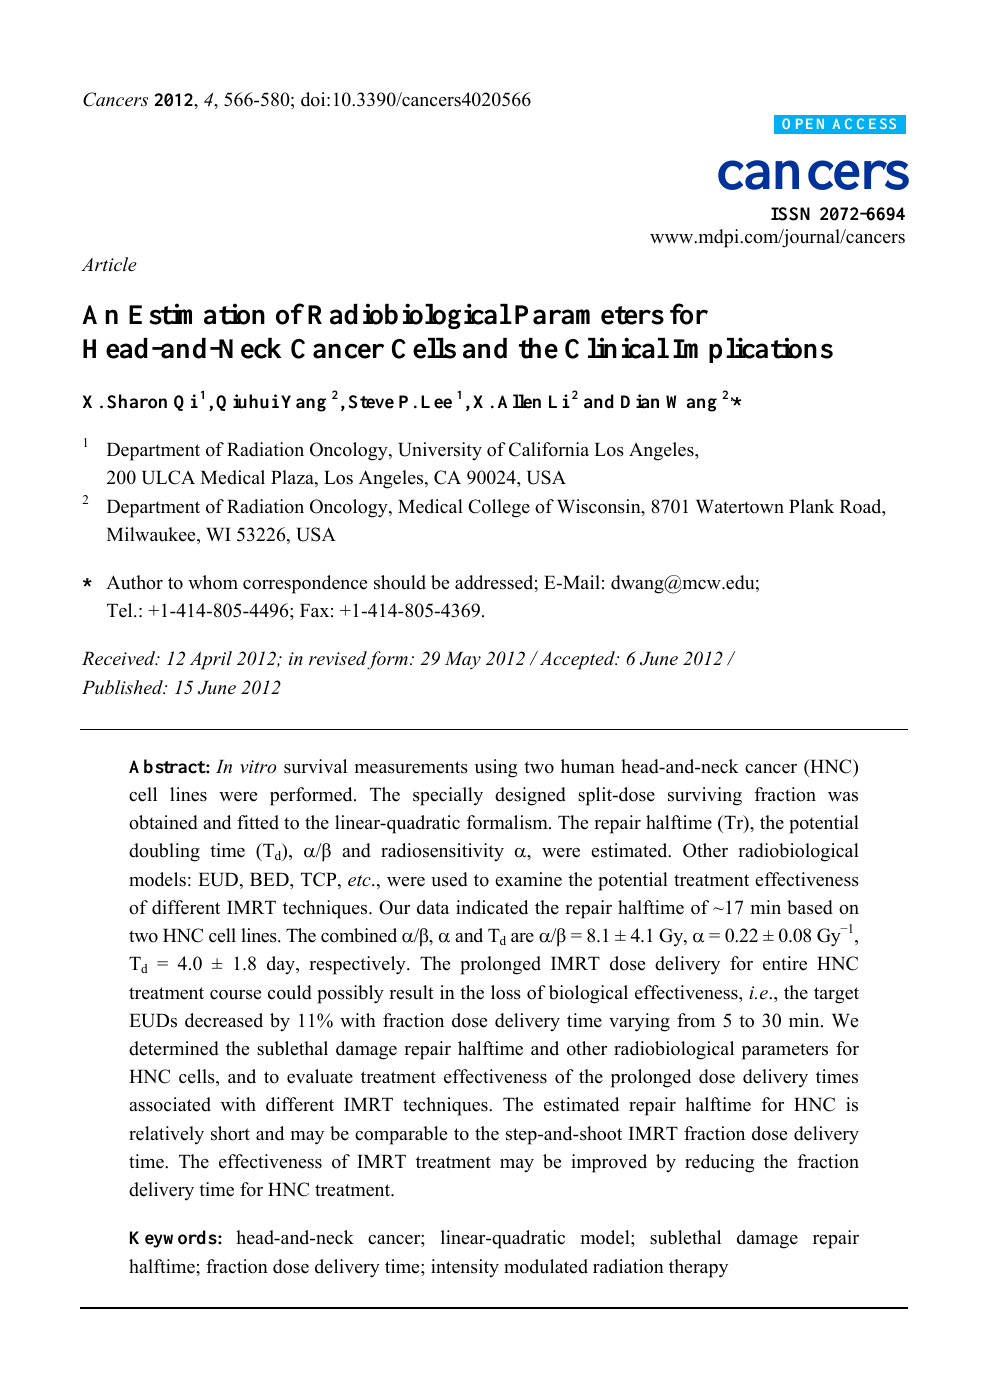 An Estimation of Radiobiological Parameters for Head-and